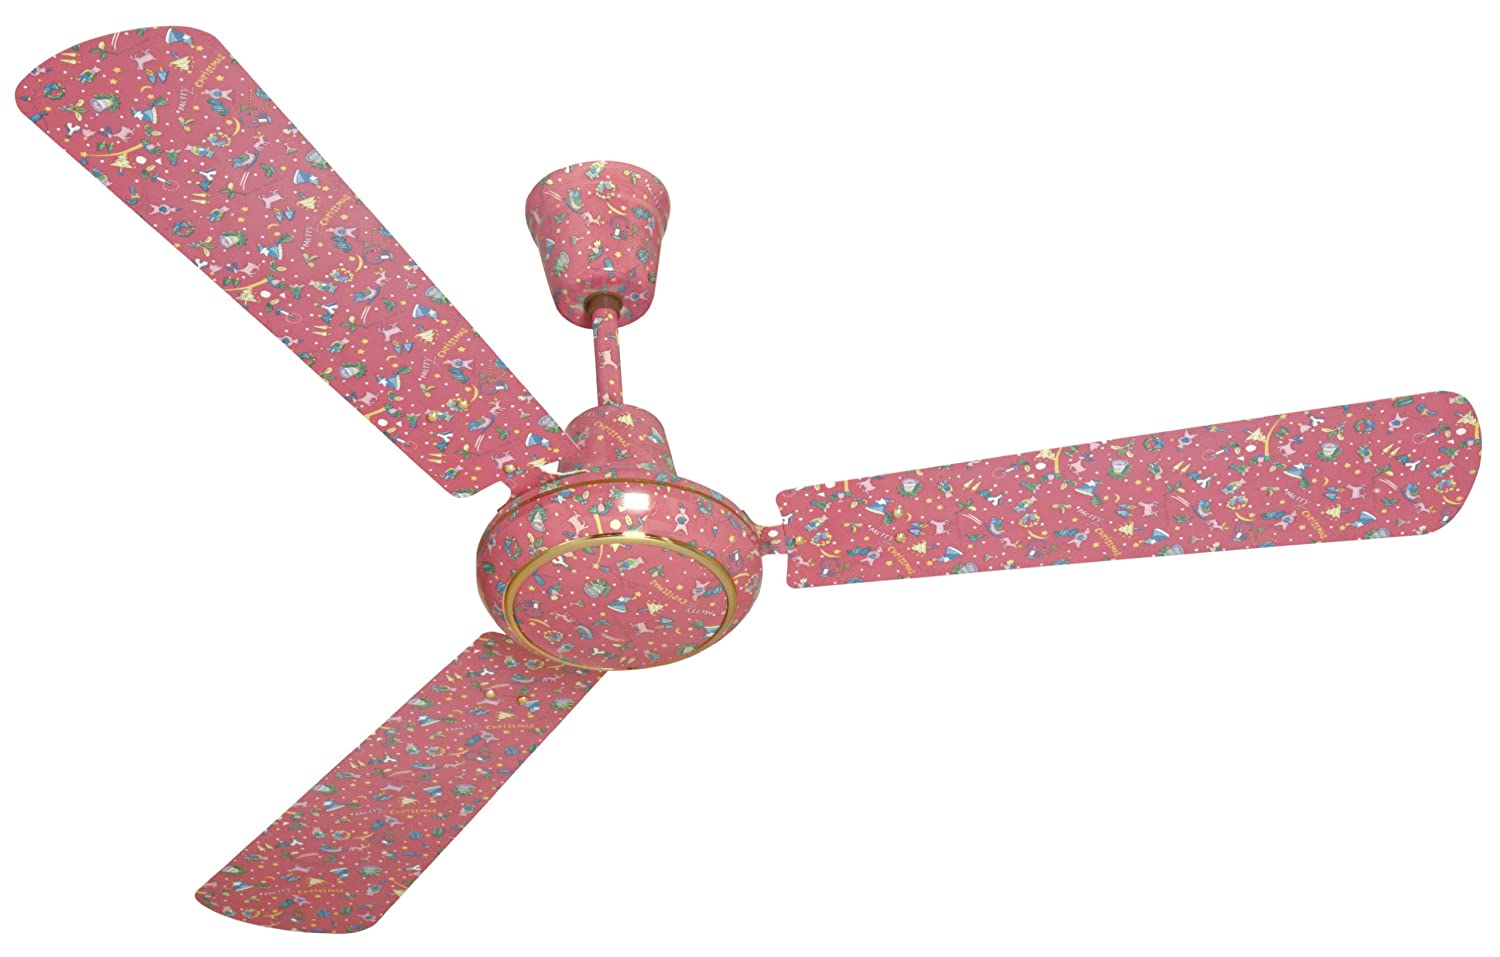 Buy havells candy 1200mm ceiling fan baby pink online at low buy havells candy 1200mm ceiling fan baby pink online at low prices in india amazon aloadofball Choice Image